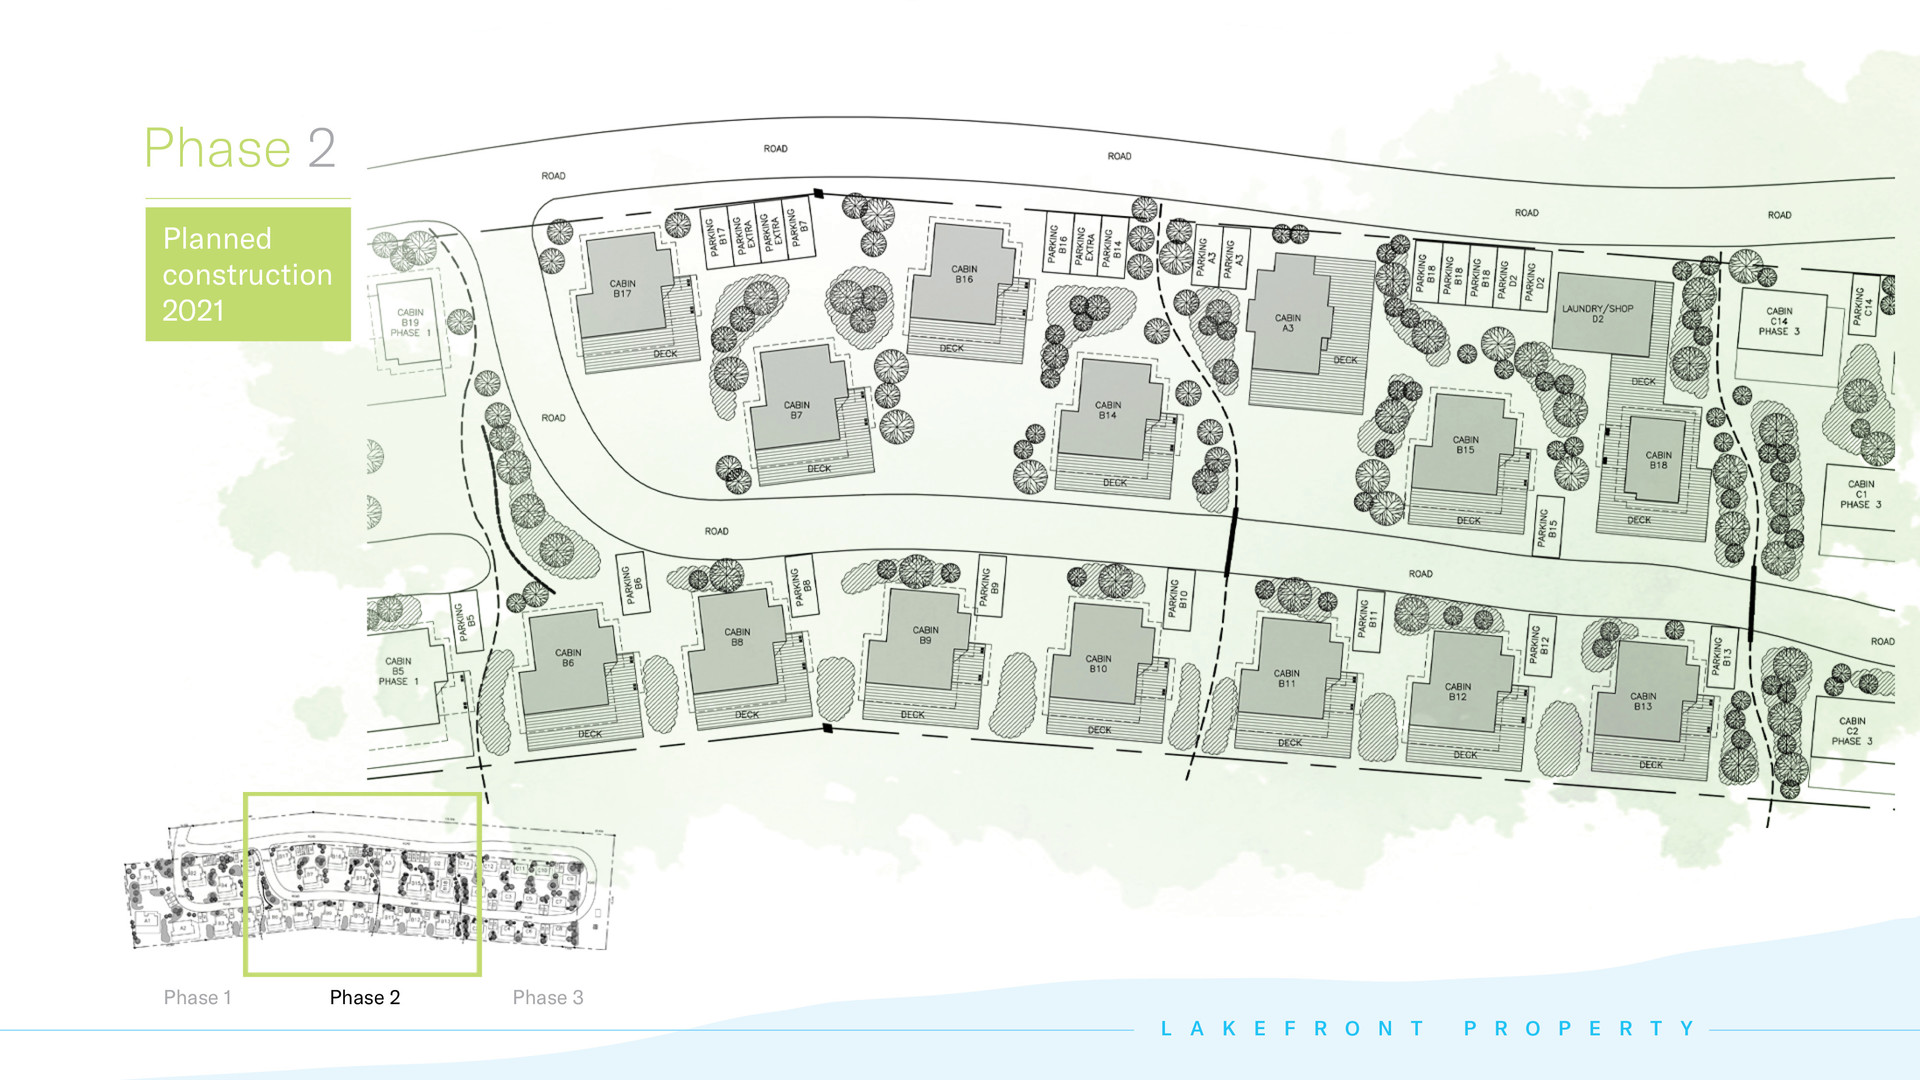 Kapasiwin Bungalows - Phase 2 planned construction 2021